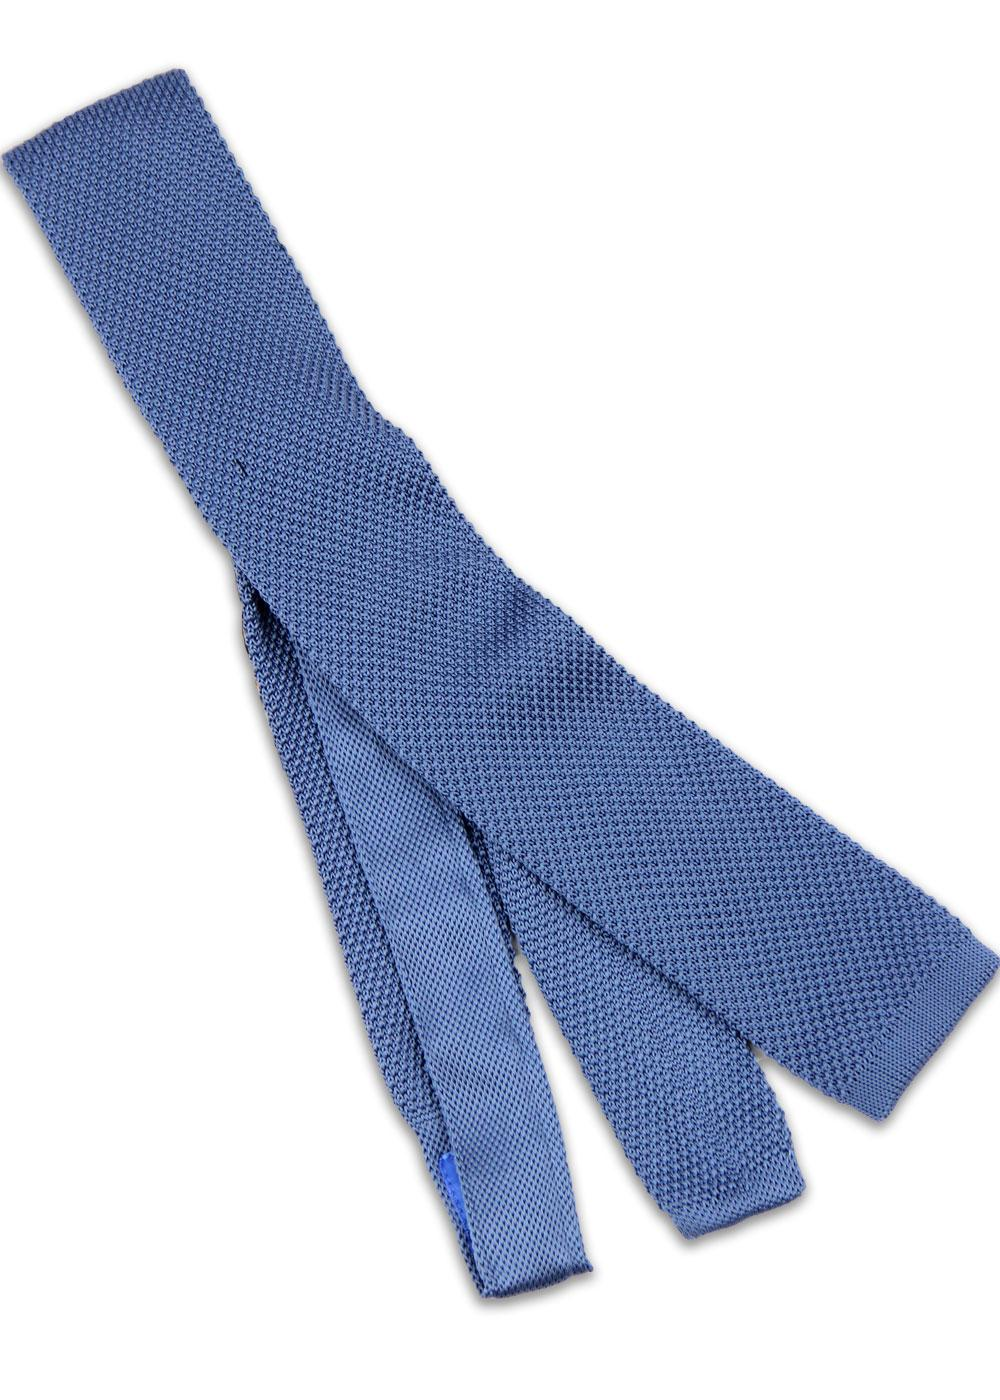 GIBSON LONDON Denim Mod Square End Knitted Tie